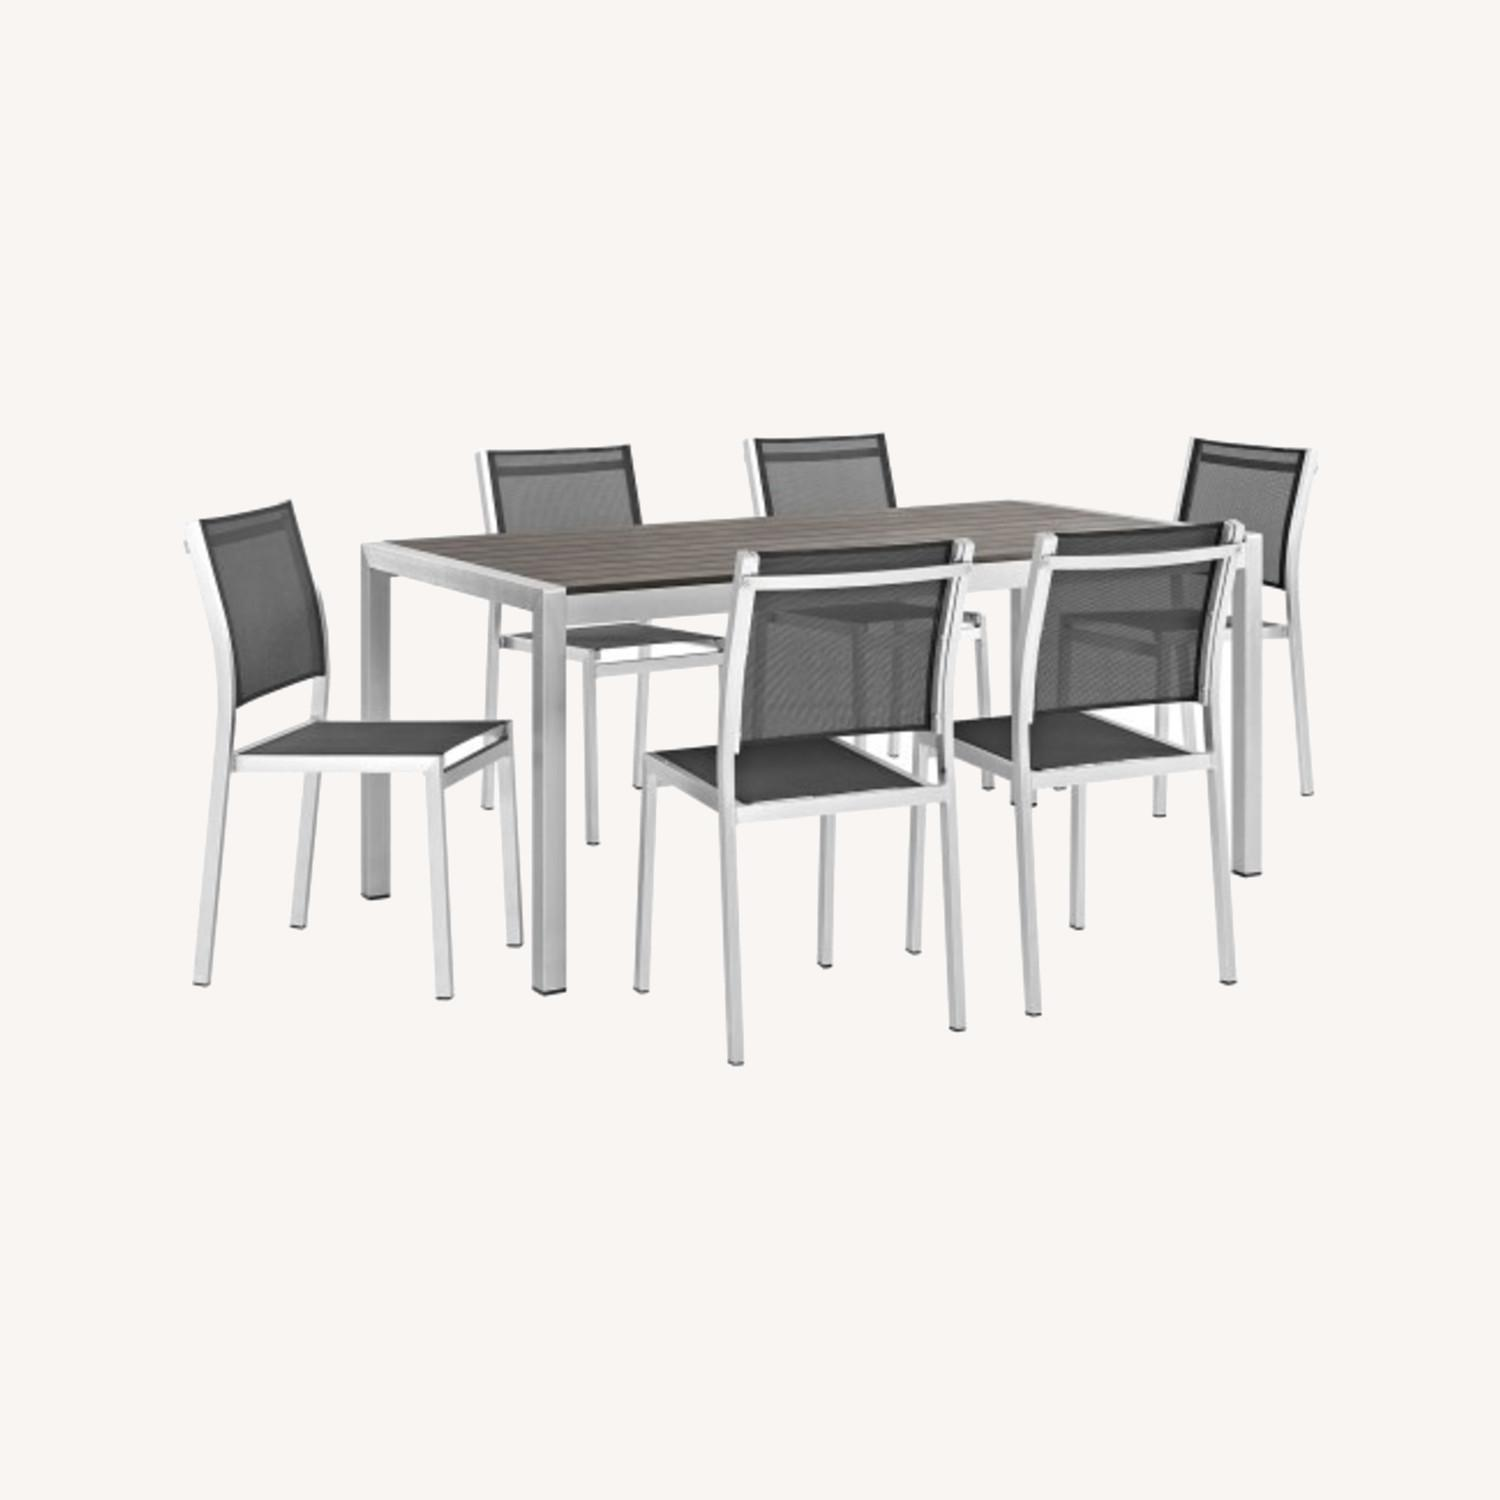 Modern 7-Piece Dining Set In Black & Silver Finish - image-7